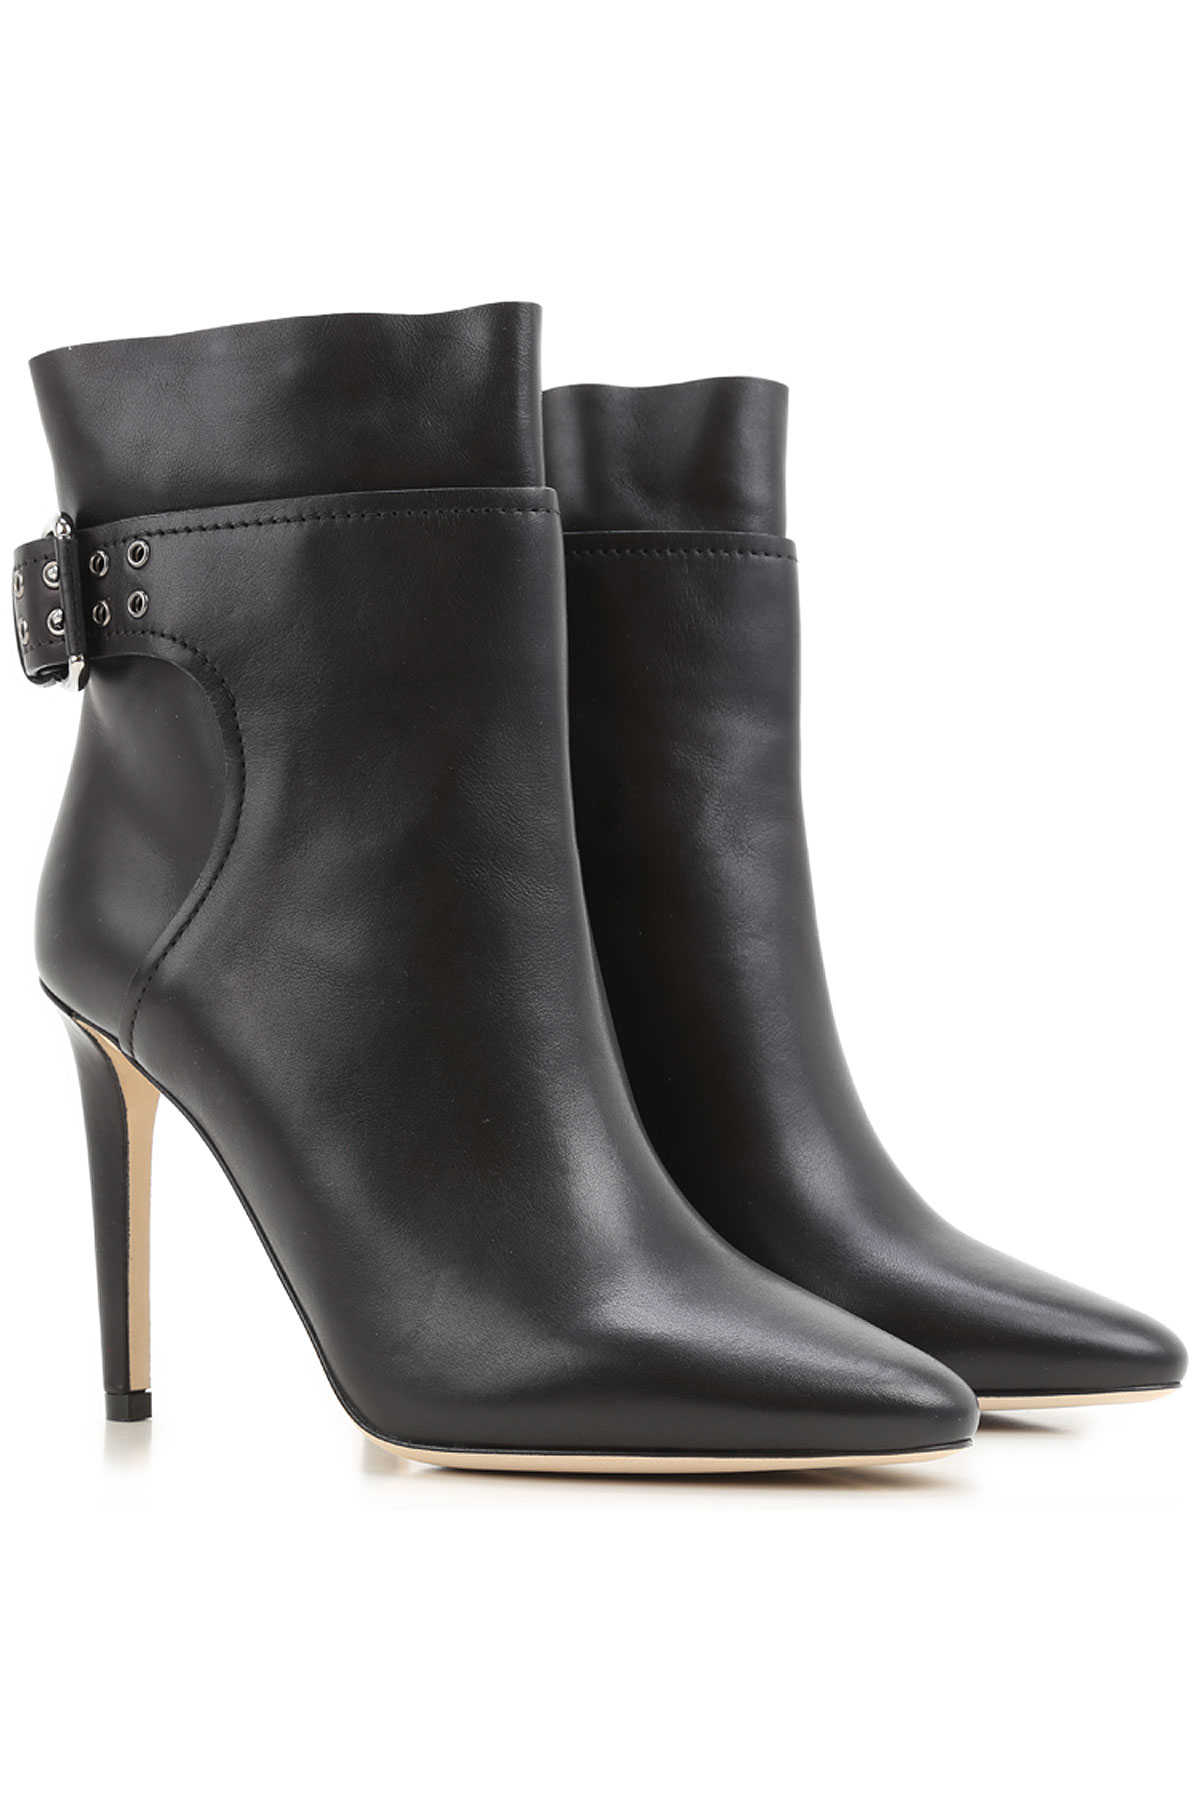 Jimmy Choo Boots for Women, Booties On